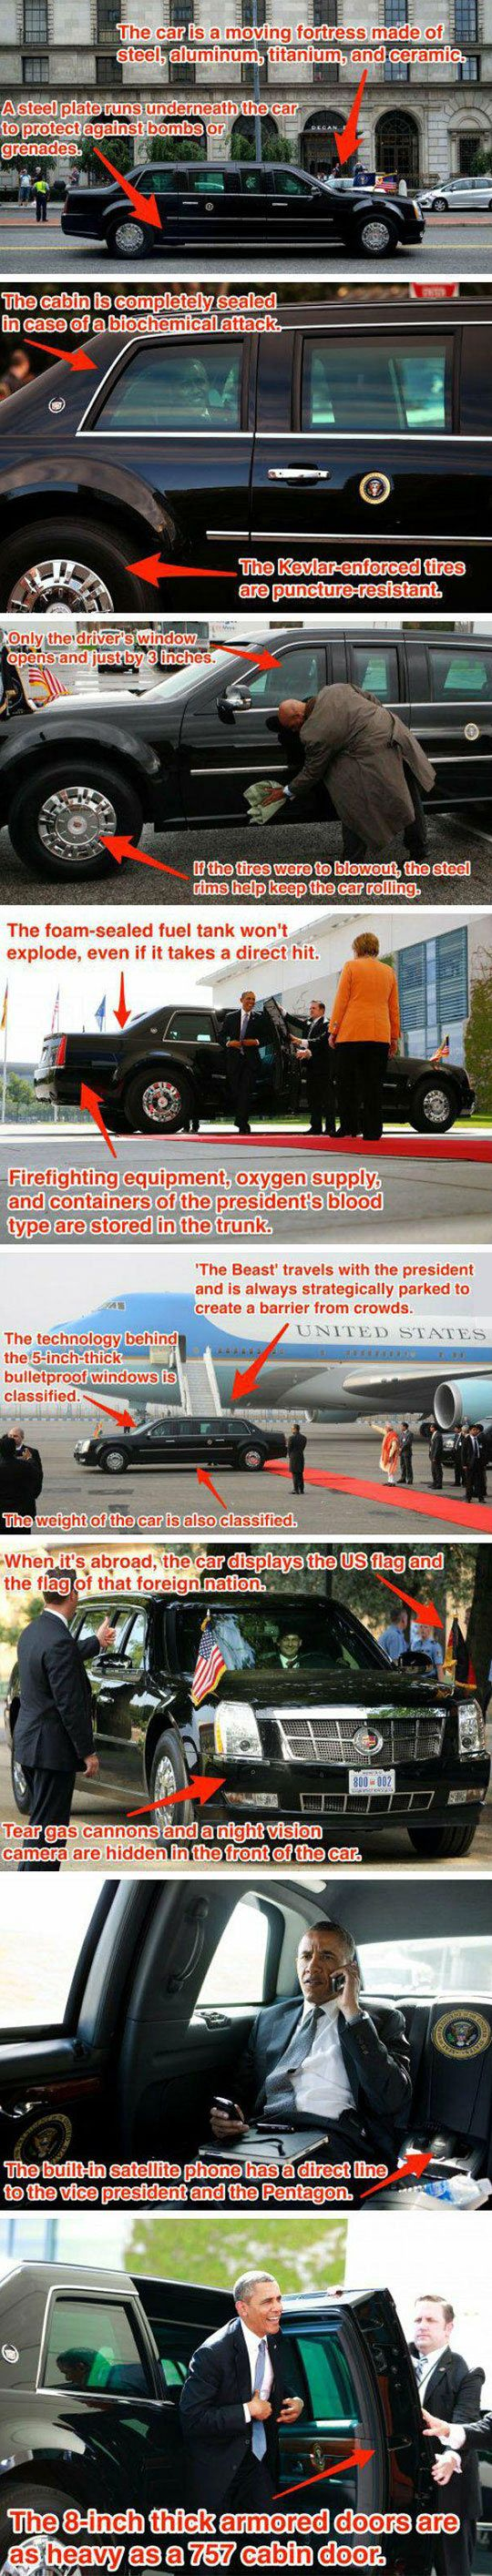 The Best Place To Be During An Apocalypse: Obama's Car: Beast, Stuff, Awesome, U.S. Presidents, Funny, Presidents Car, Apocalypse Cars, Place